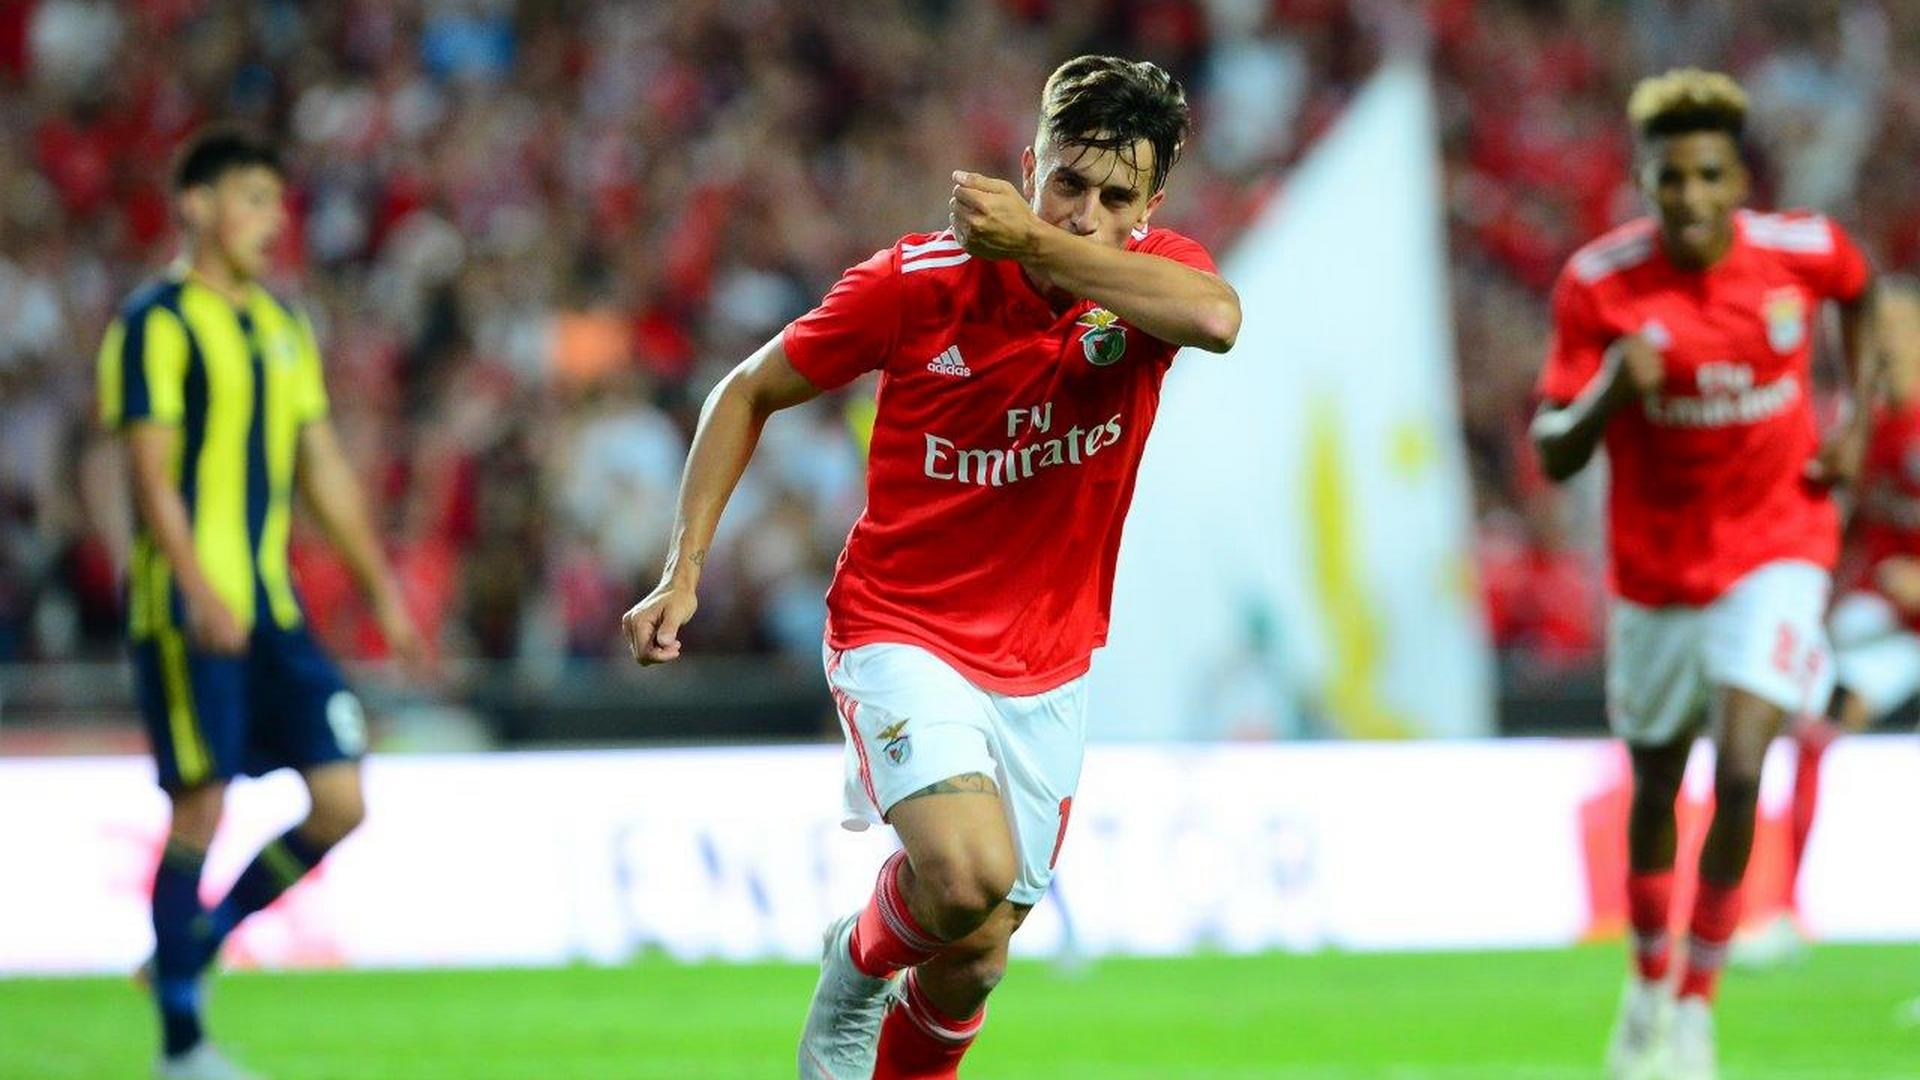 Benfica vs paok betting tips open golf 2021 betting line